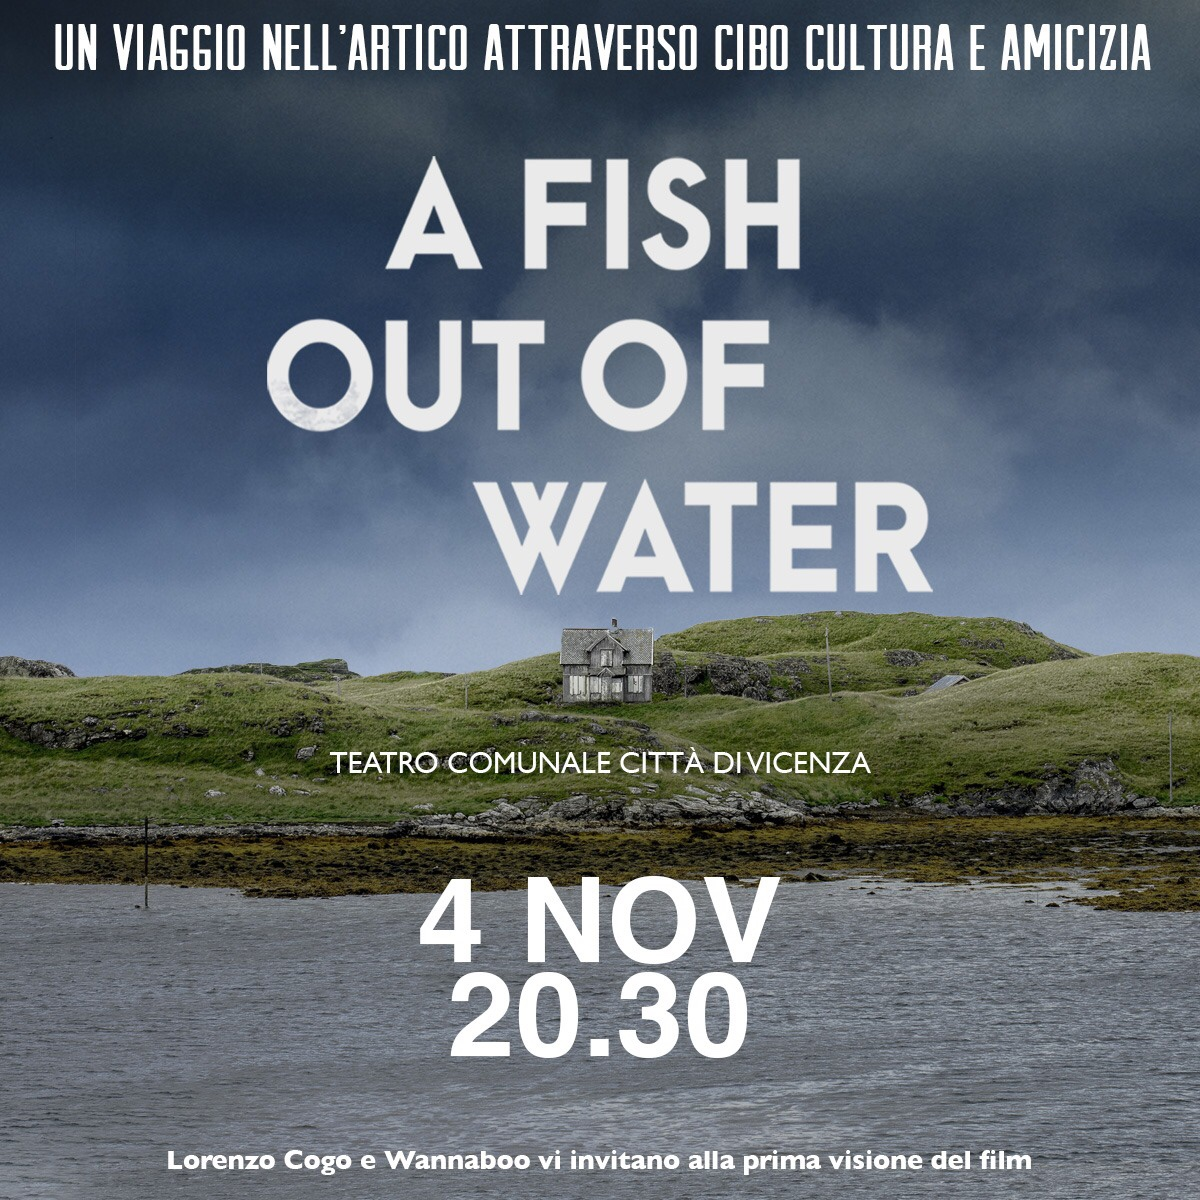 A fish out of water film documentario Chef Lorenzo Cogo chef stellato vicenza food ristoranti veneto eventi vicenza teatro comunale Donne Vicentine Gatte Vicentine donne vicenza el coq